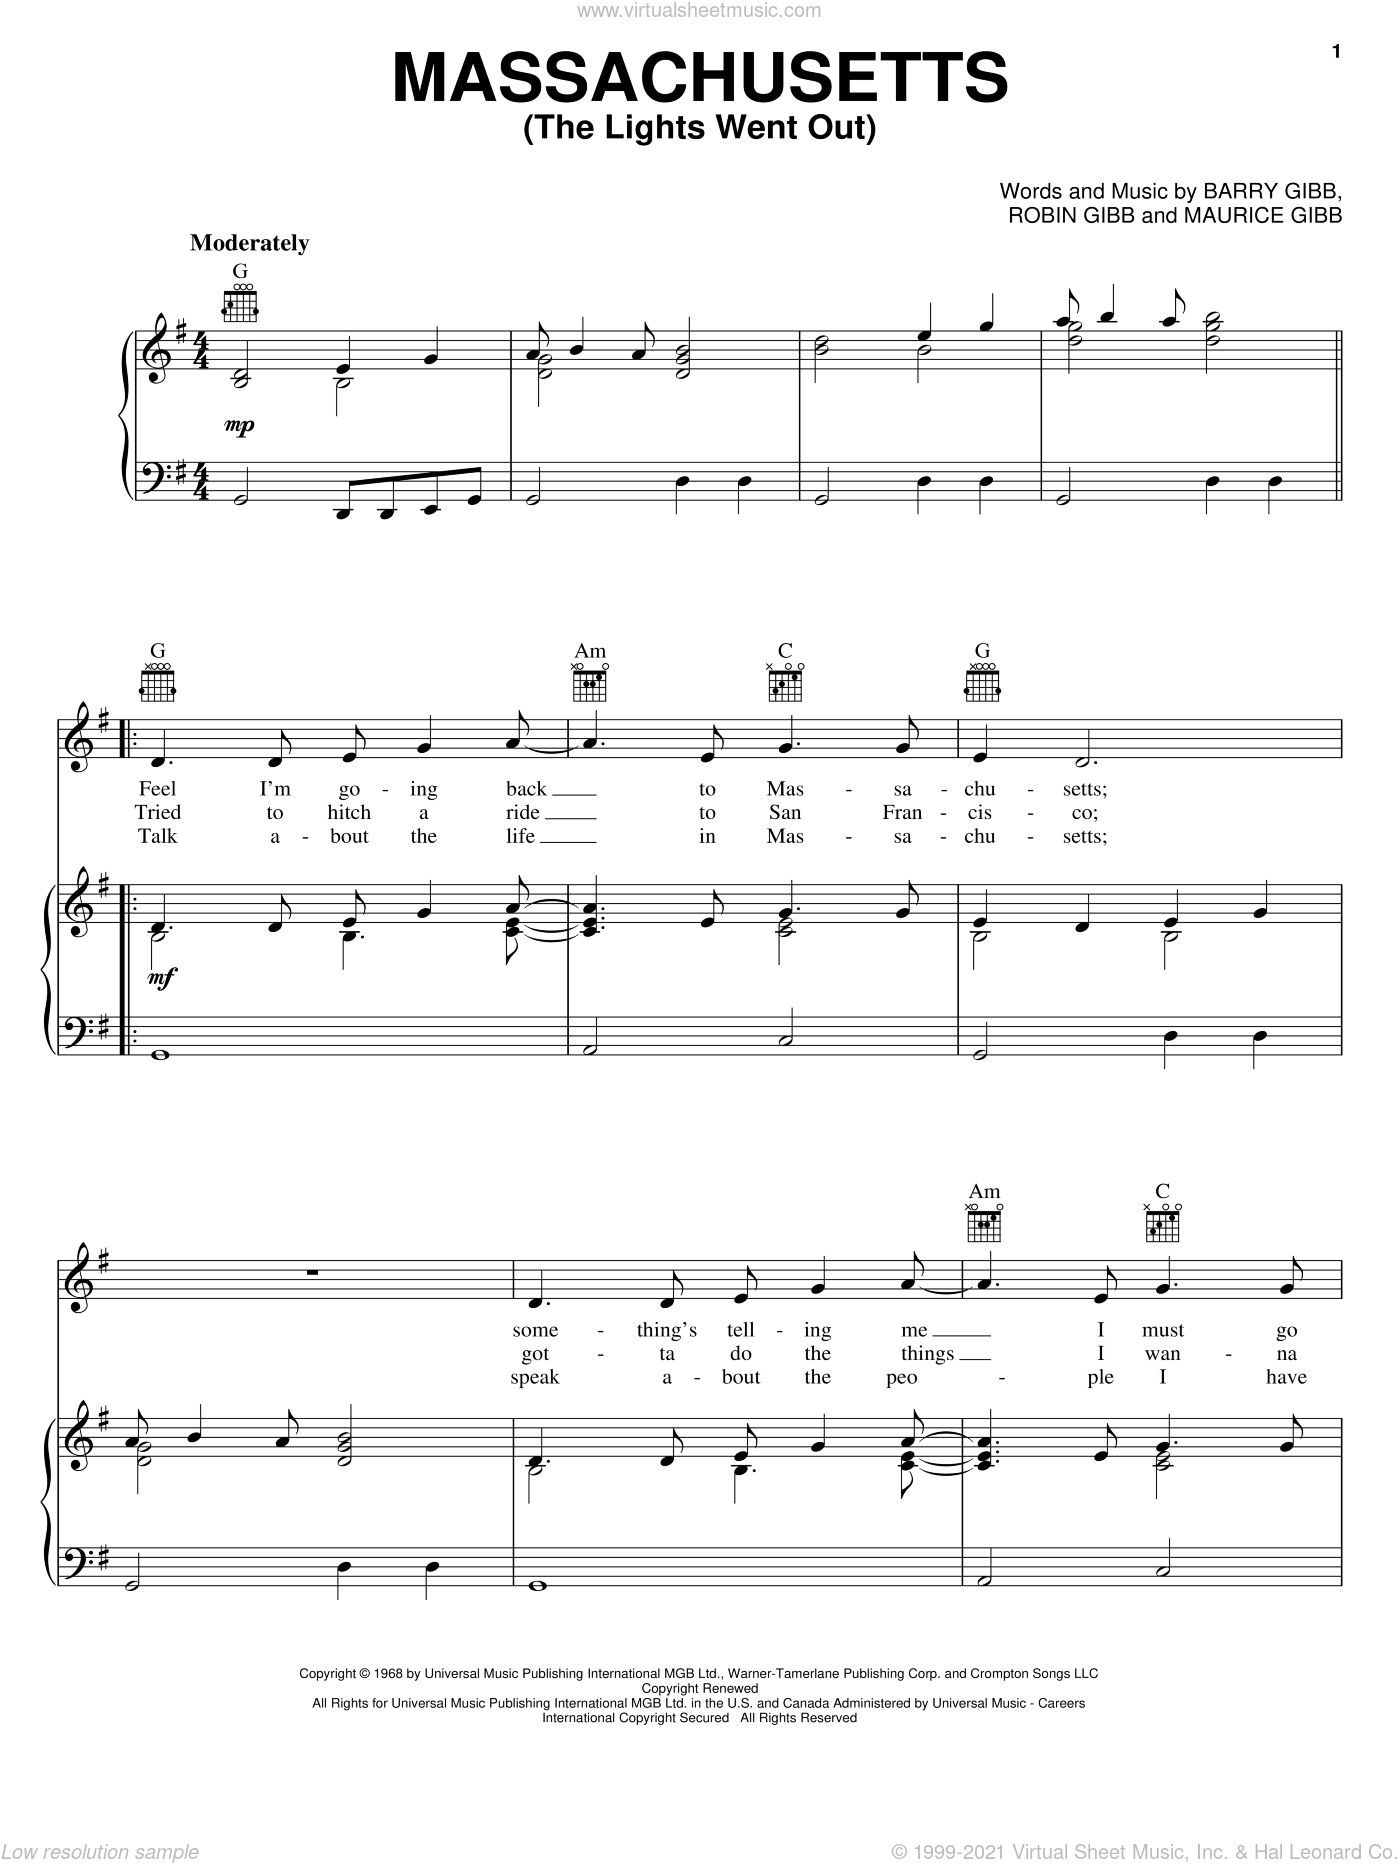 Massachusetts (The Lights Went Out) sheet music for voice, piano or guitar by Robin Gibb